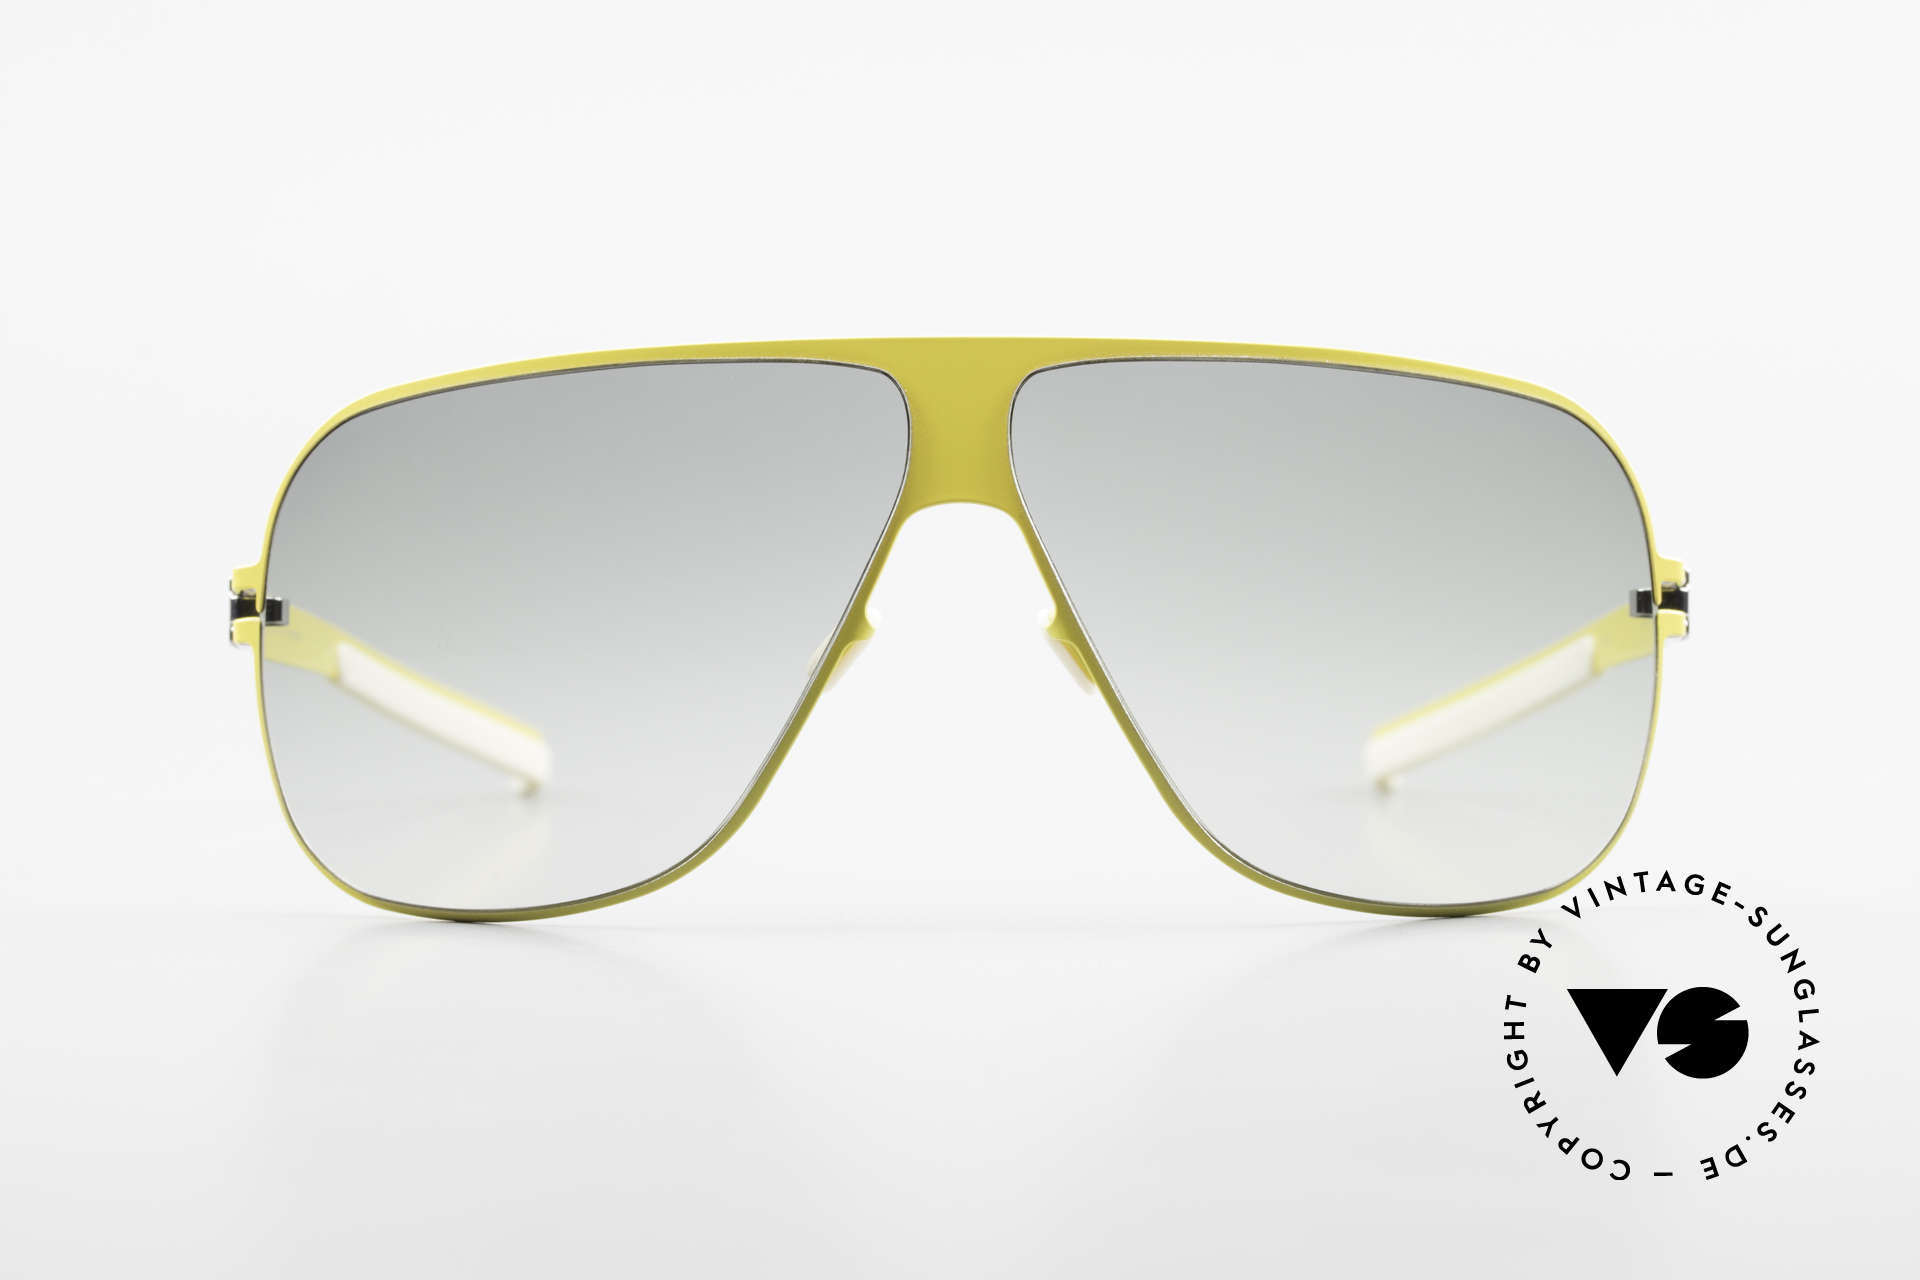 Mykita Hector Aviator Mykita Shades 2009's, MYKITA: the youngest brand in our vintage collection, Made for Men